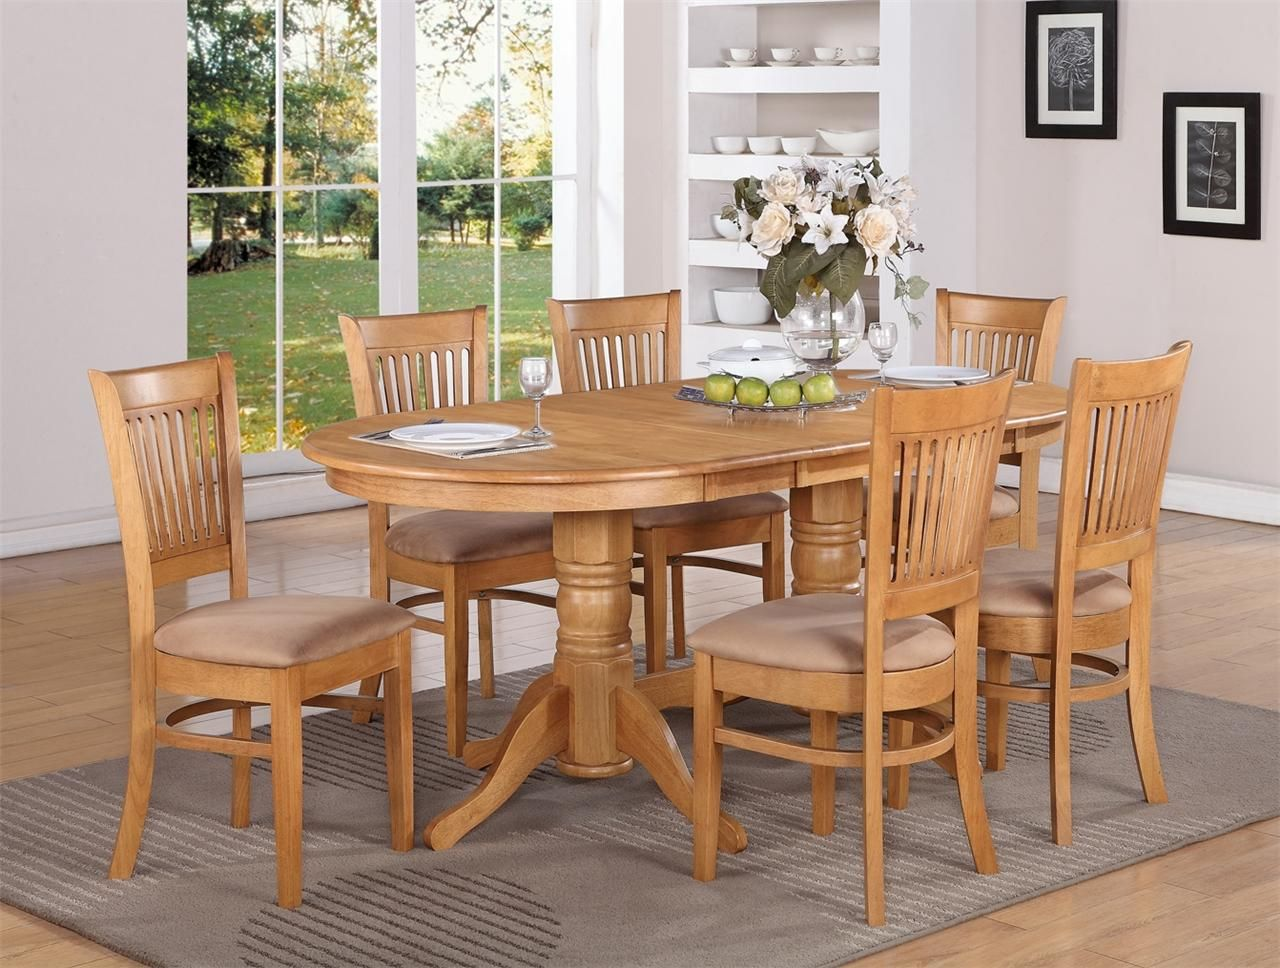 Exciting Dining Furniture Design with Cozy Dinette Sets Nj ...